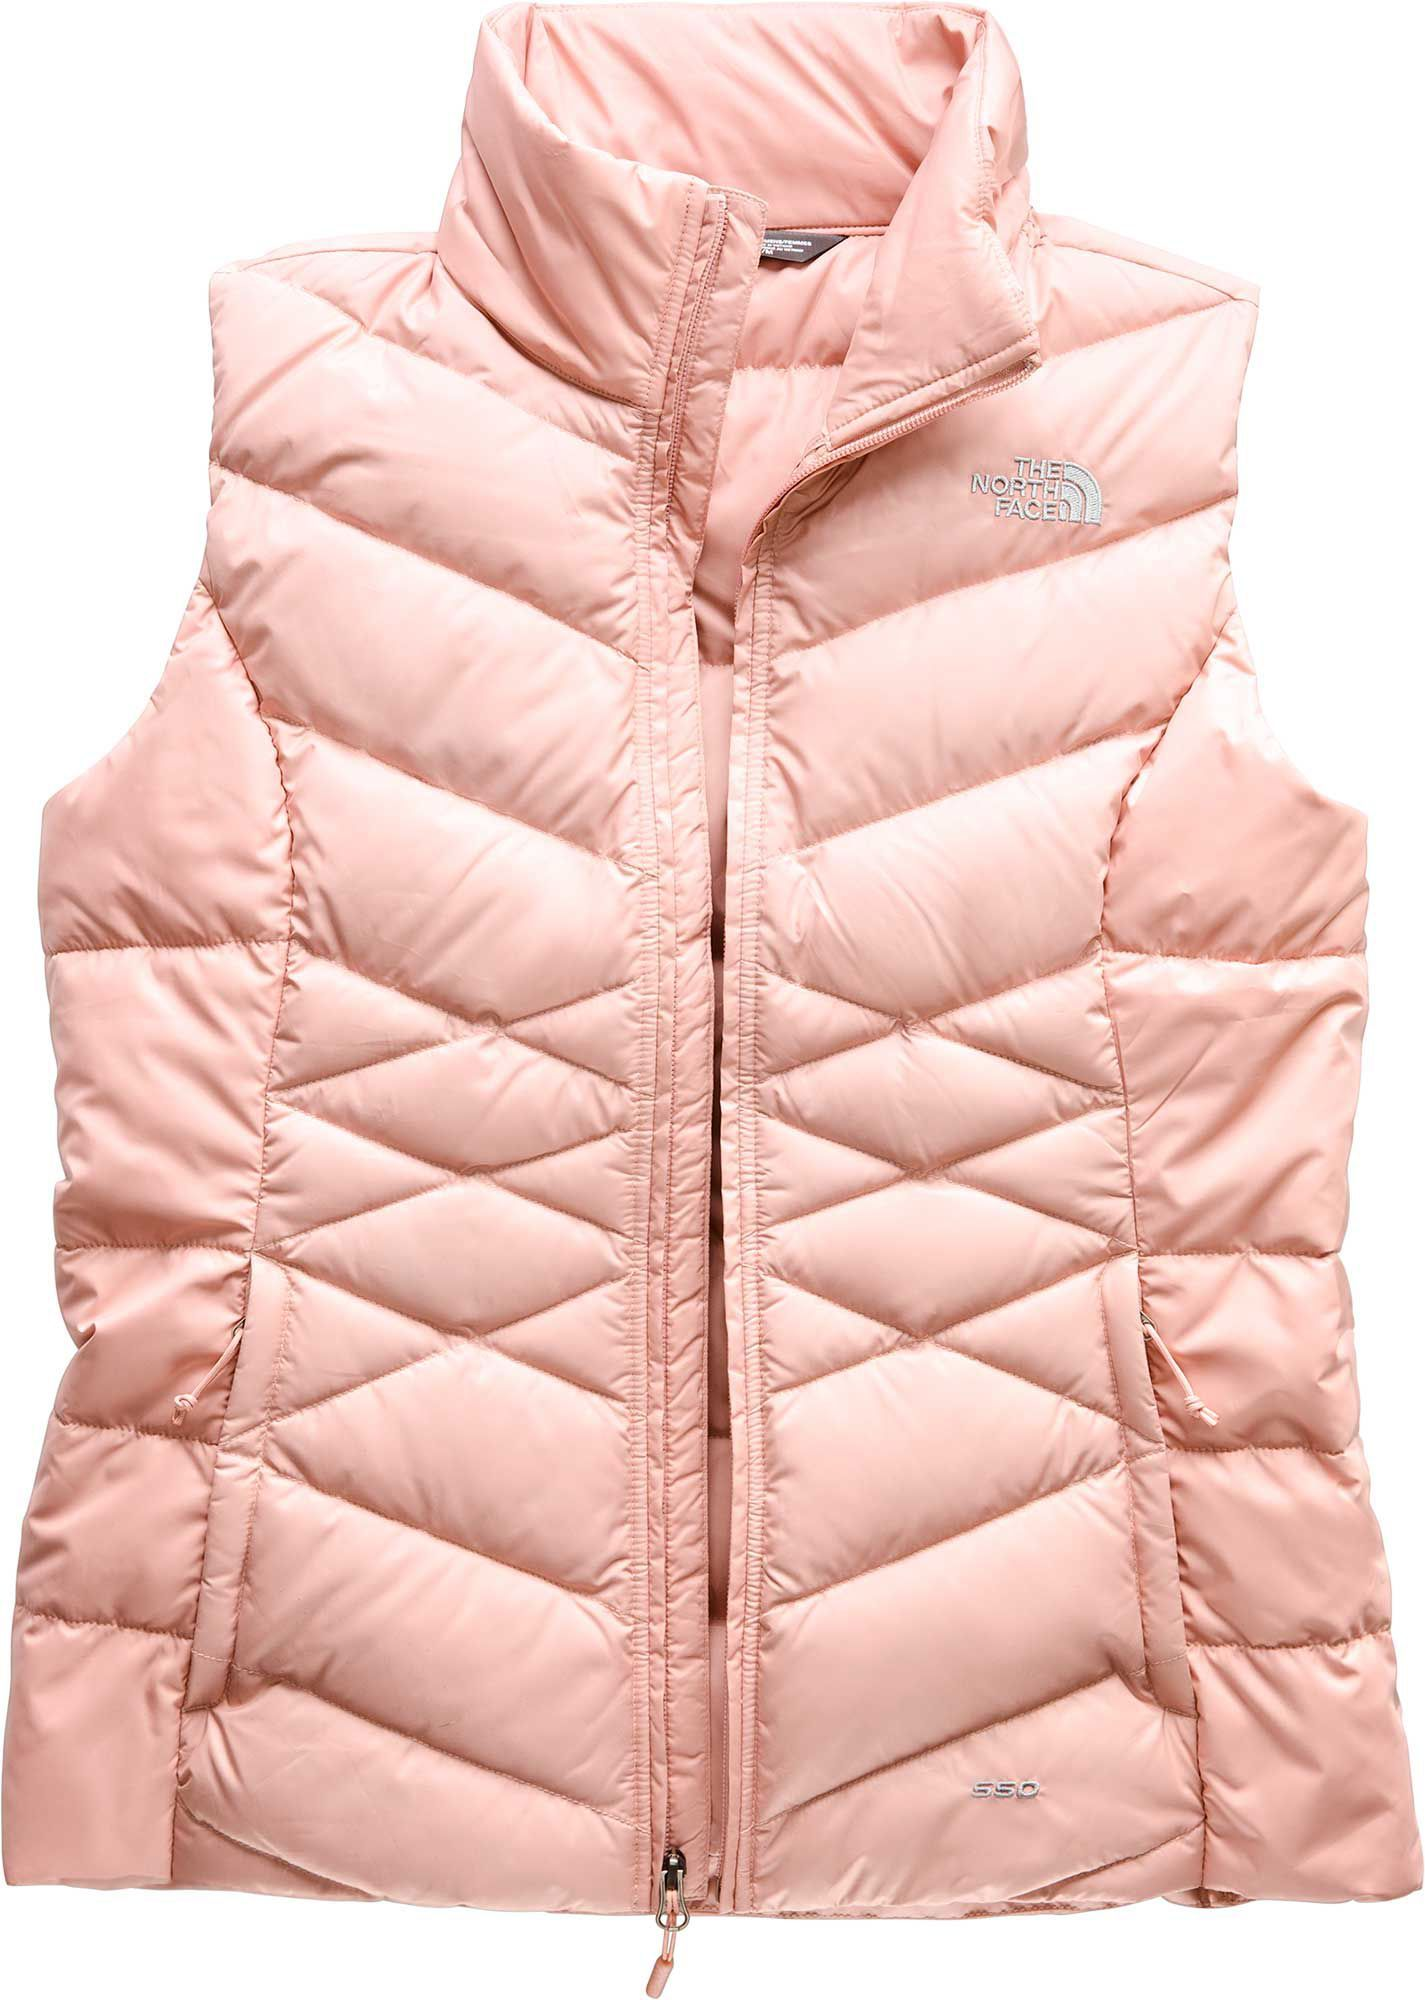 fdcdf84b8e6 The North Face Women's Alpz Down Vest in 2019 | I want!!! | North ...